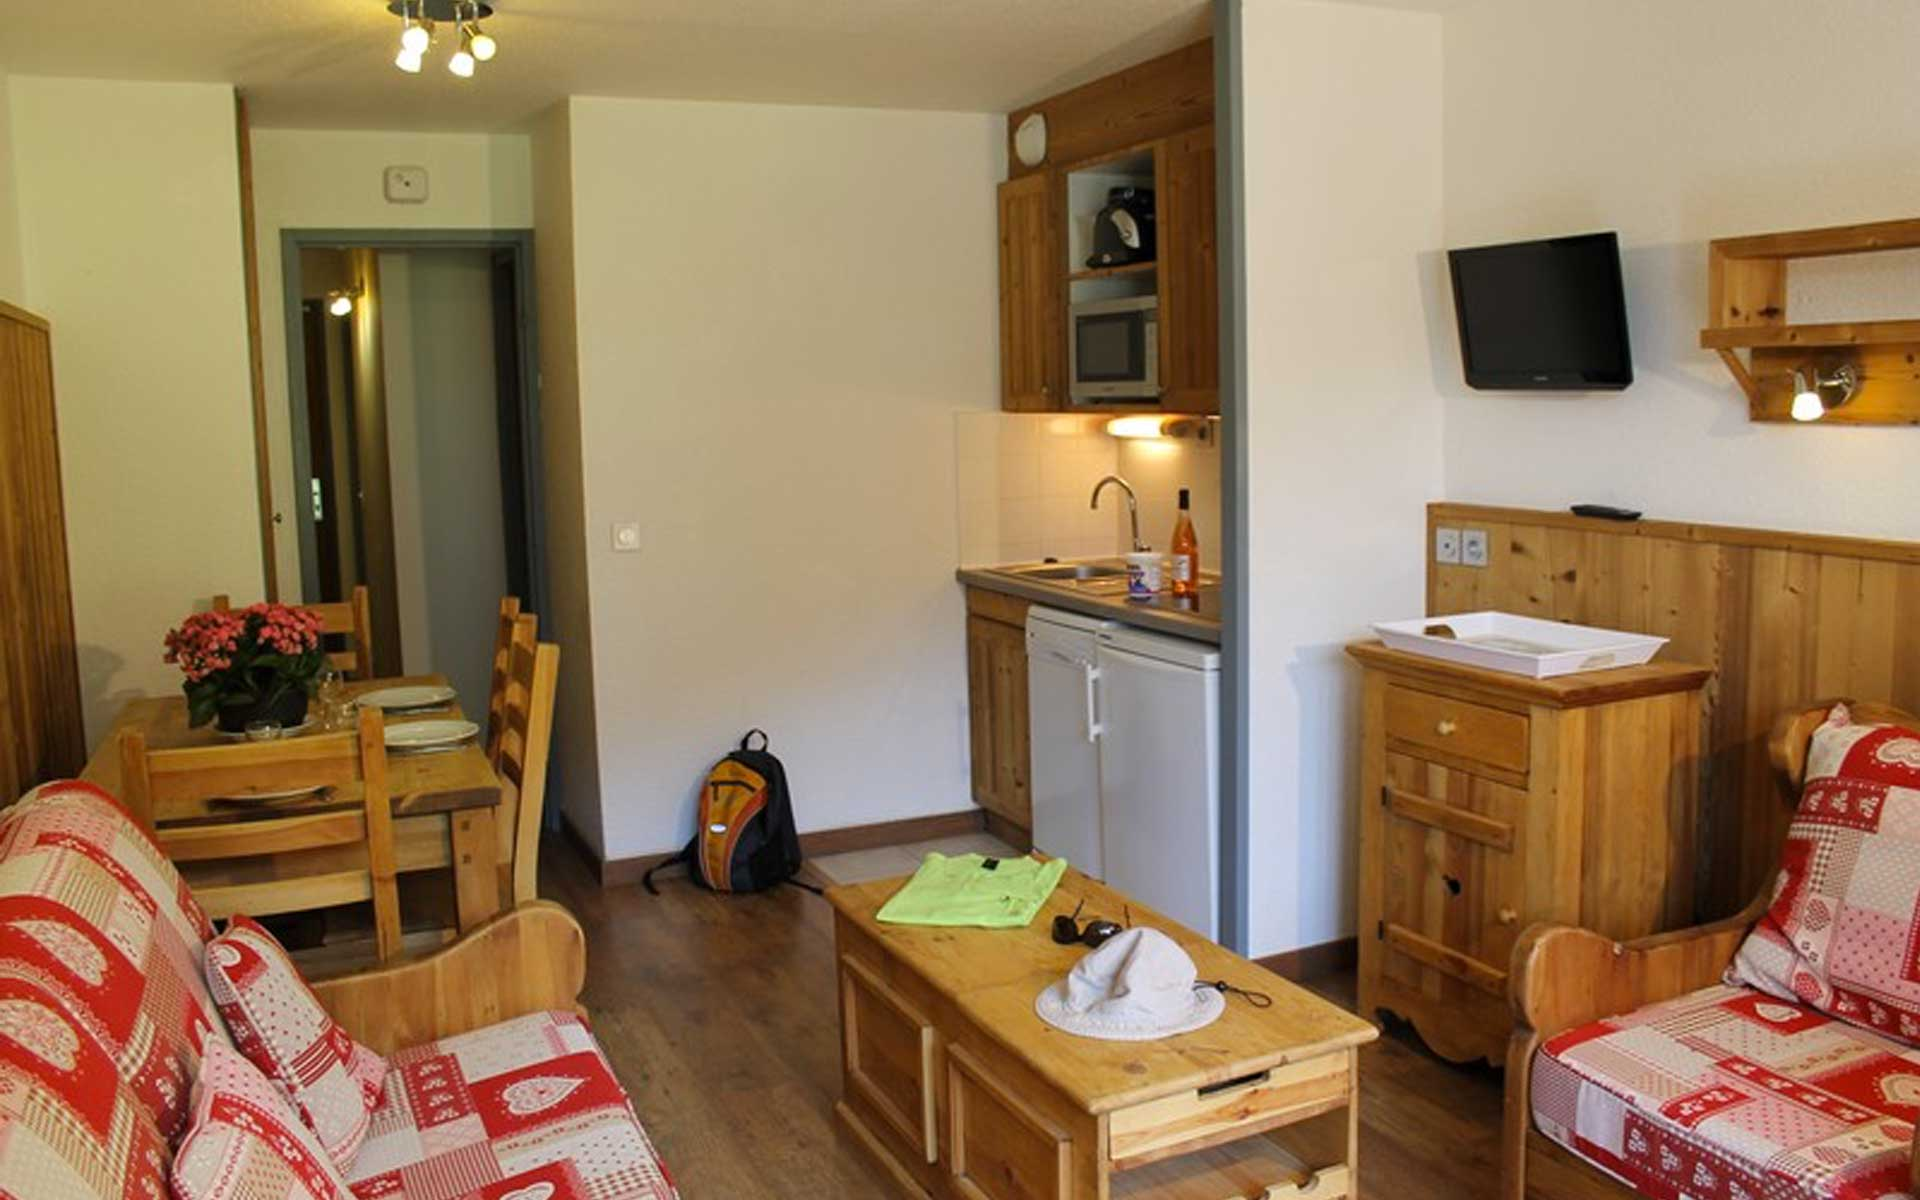 apparatement-4-les-cles-blanches-conciergerie-maintenance-location-appartements